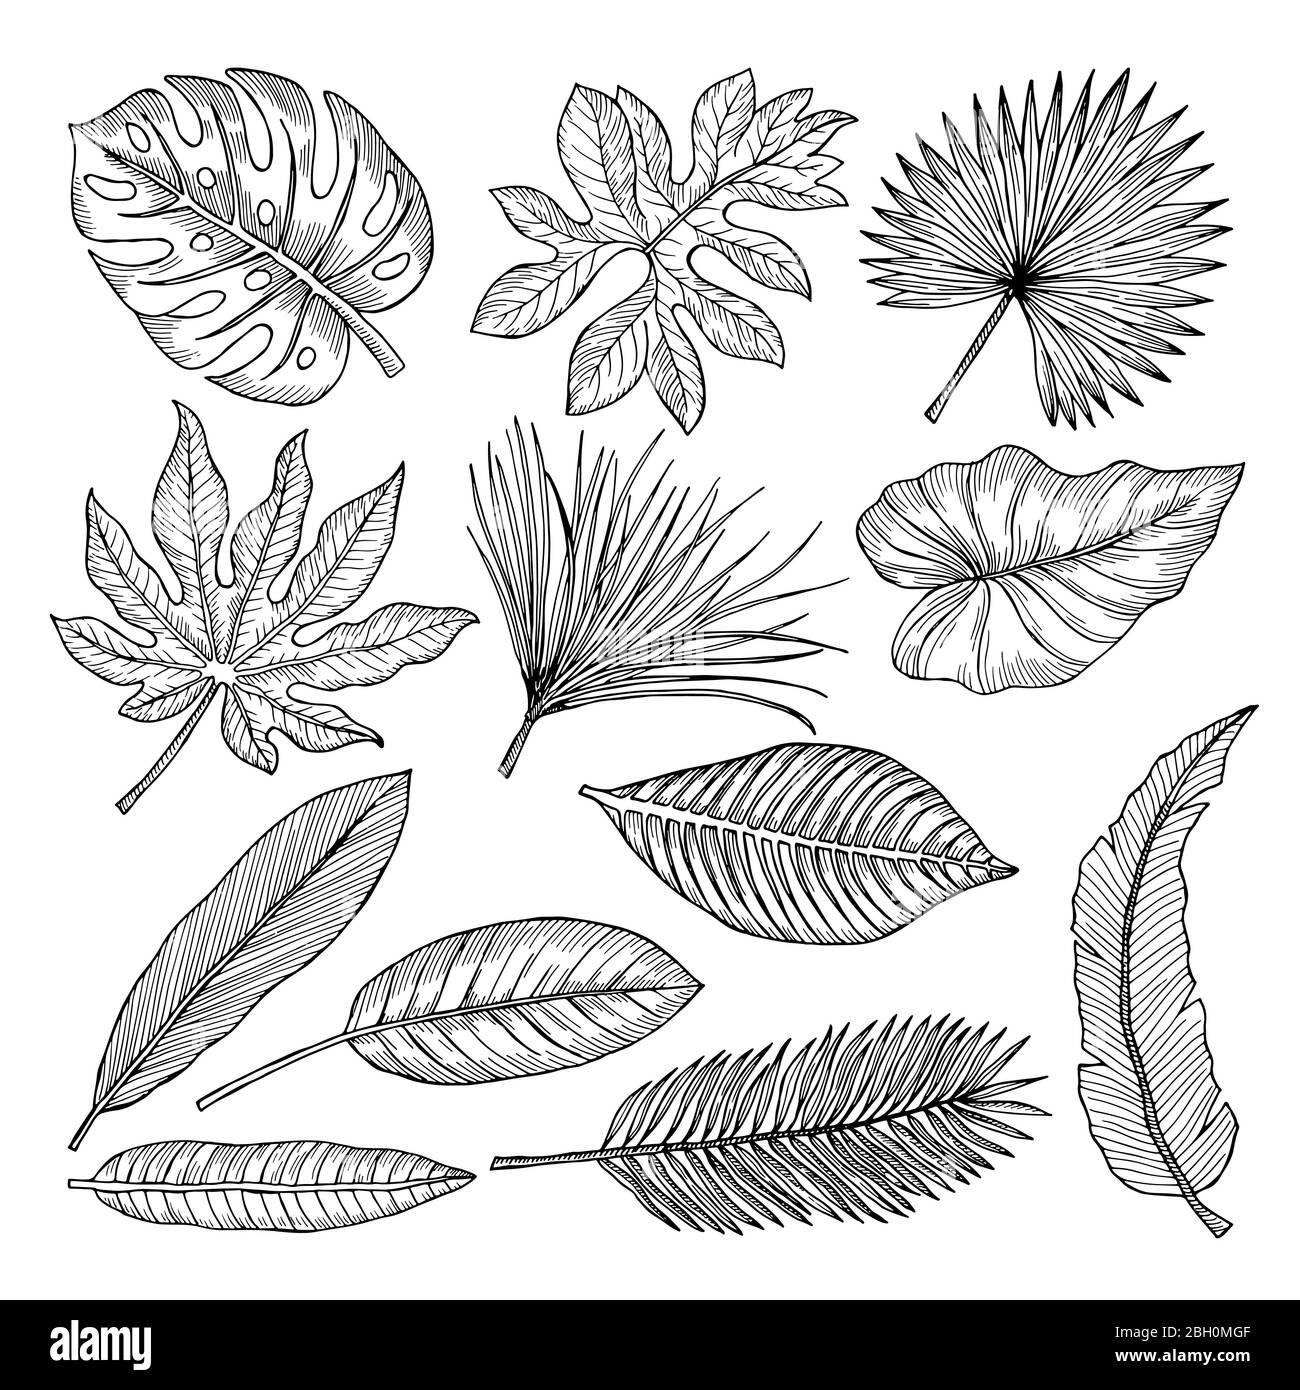 Tropical Leaves And Plants Vector Hand Drawing Pictures Isolate Illustration Of Tropical Leaf Palm Stock Vector Image Art Alamy Techniques you can apply to any botanical illustration! https www alamy com tropical leaves and plants vector hand drawing pictures isolate illustration of tropical leaf palm image354672655 html